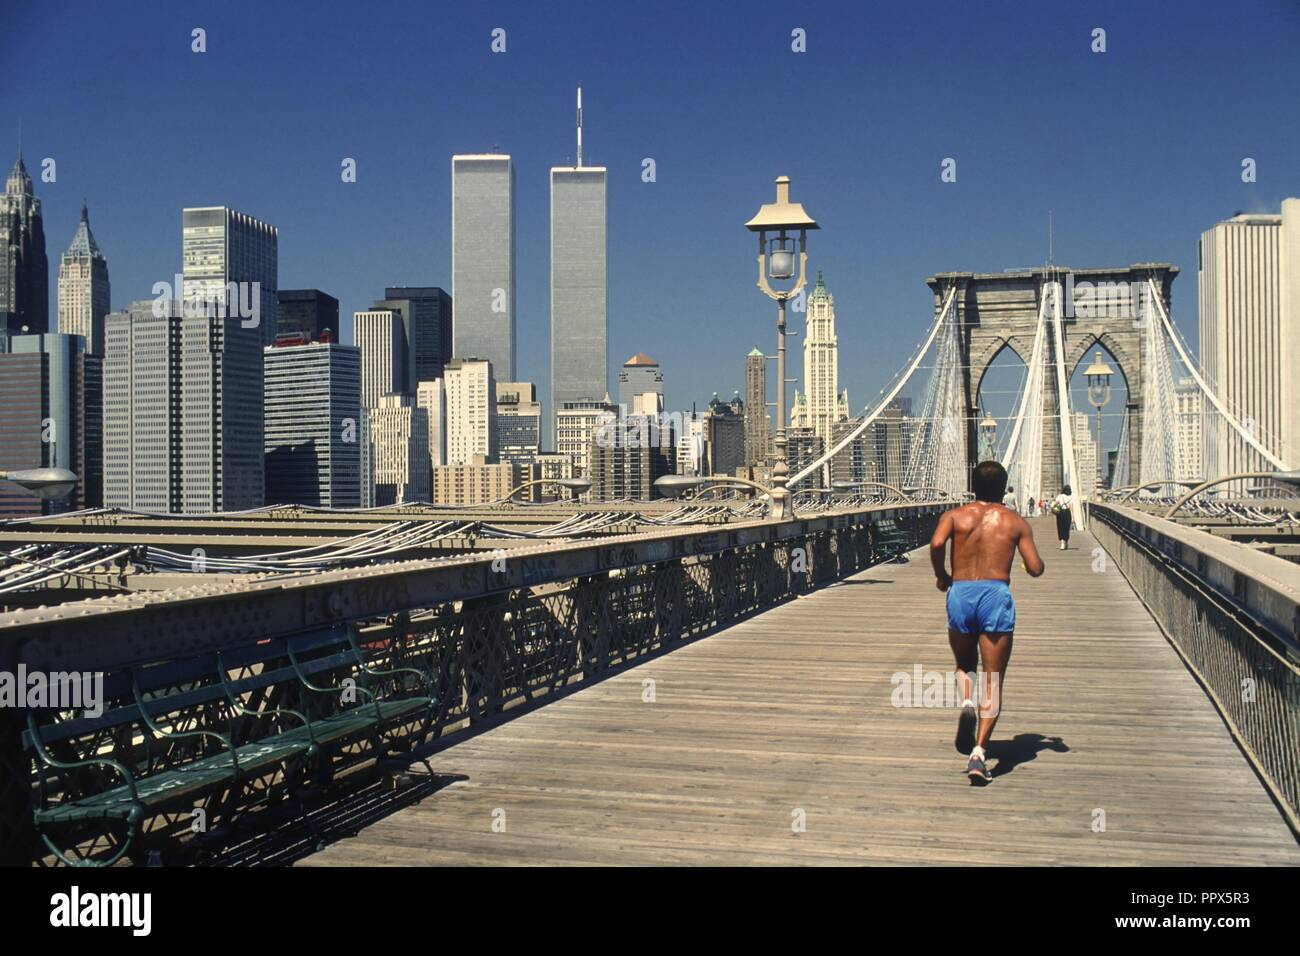 USA, New York city, Manhattan the Brooklyn Bridge with World Trade Center Twin Towers in 1985 - Stock Image